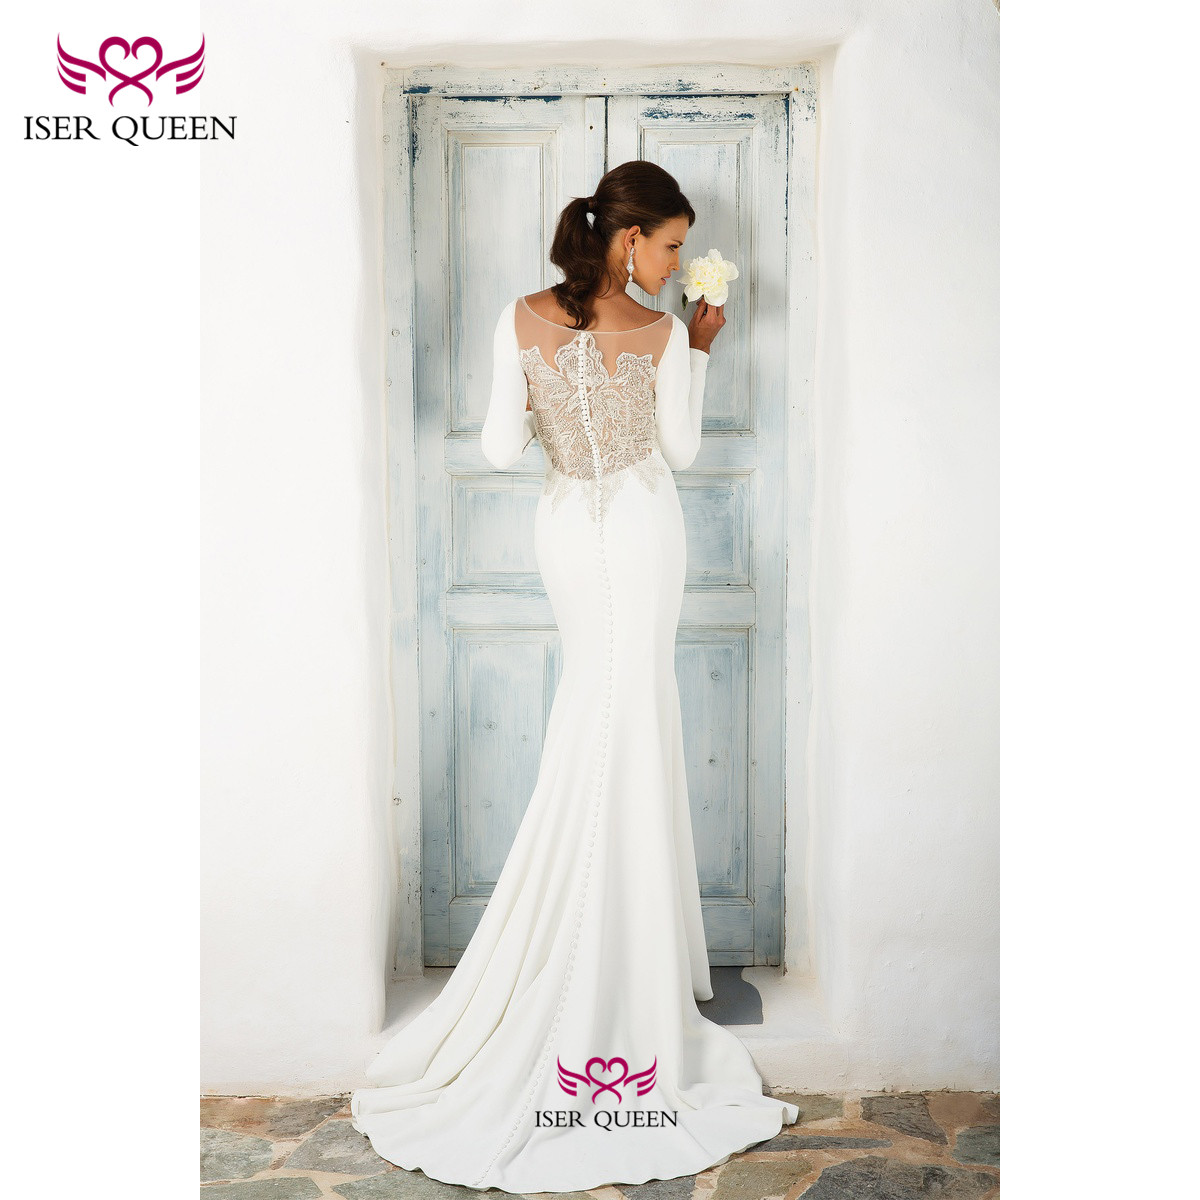 Long Sleeves Embroidered Lace Satin Mermaid Wedding Gowns Sheath Spanish Pure White Vestido 2020 Wedding Dress W0540